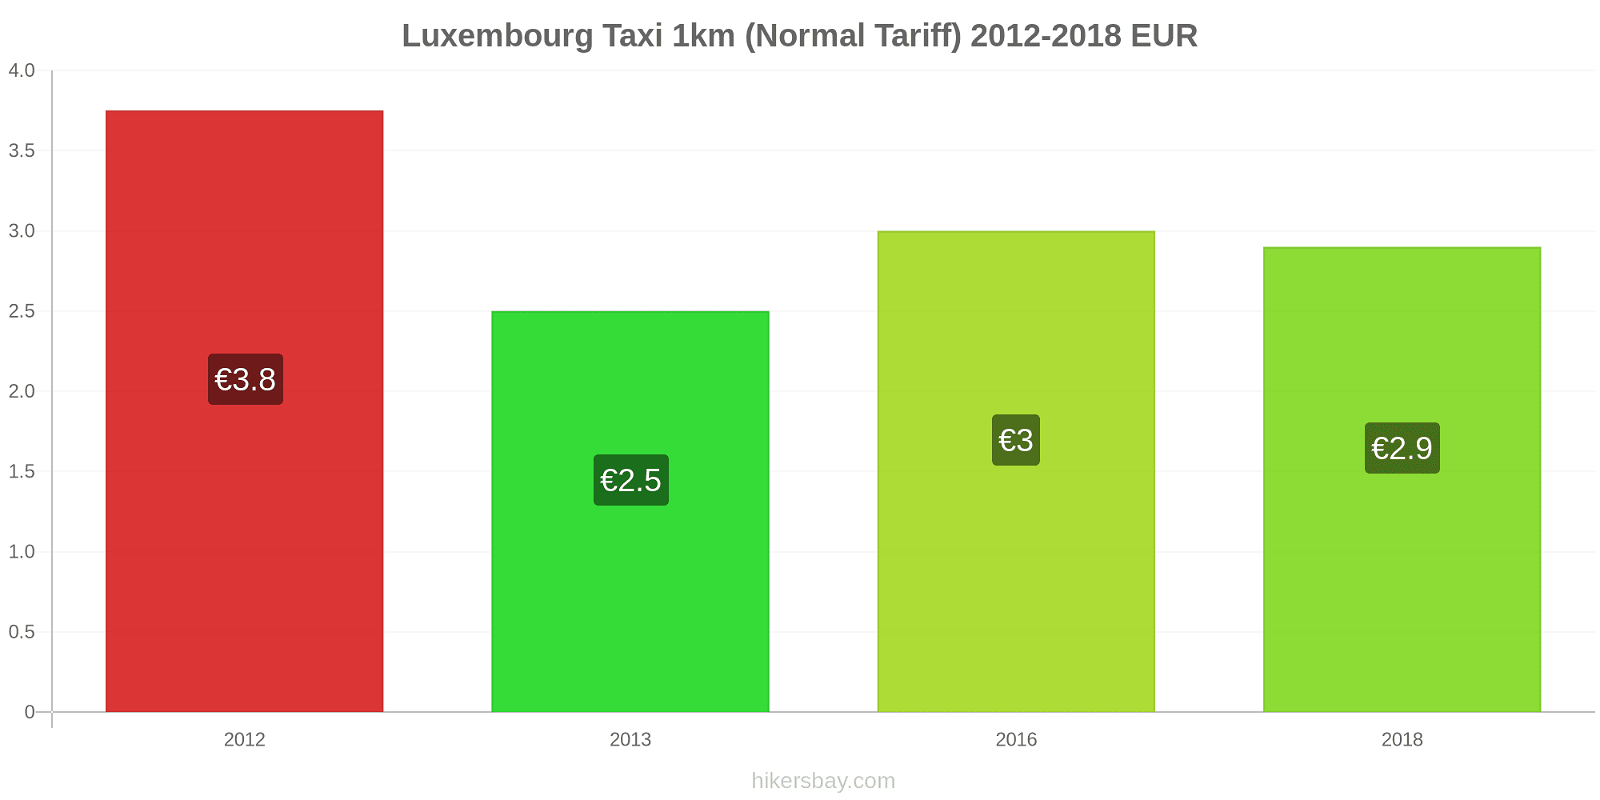 Luxembourg price changes Taxi 1km (Normal Tariff) hikersbay.com